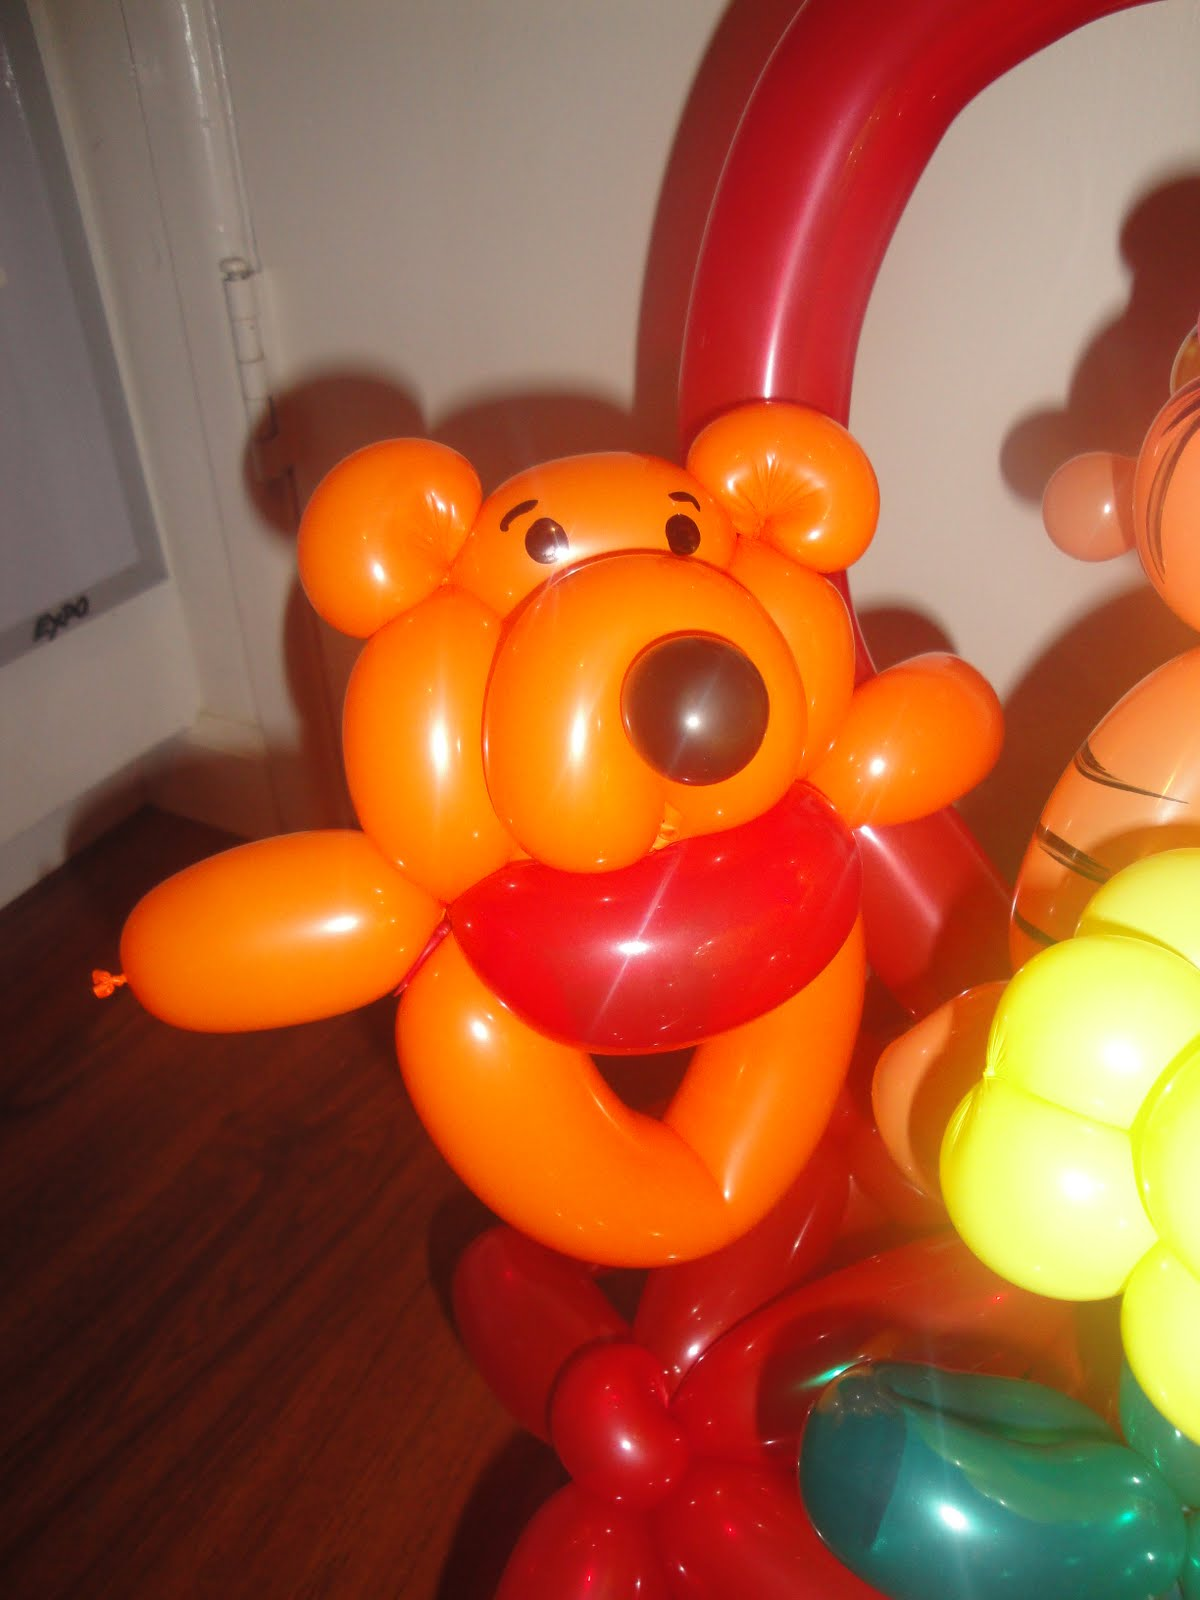 Balloon Twisting With Lien Pooh Bear Tigger And Piglet Gang